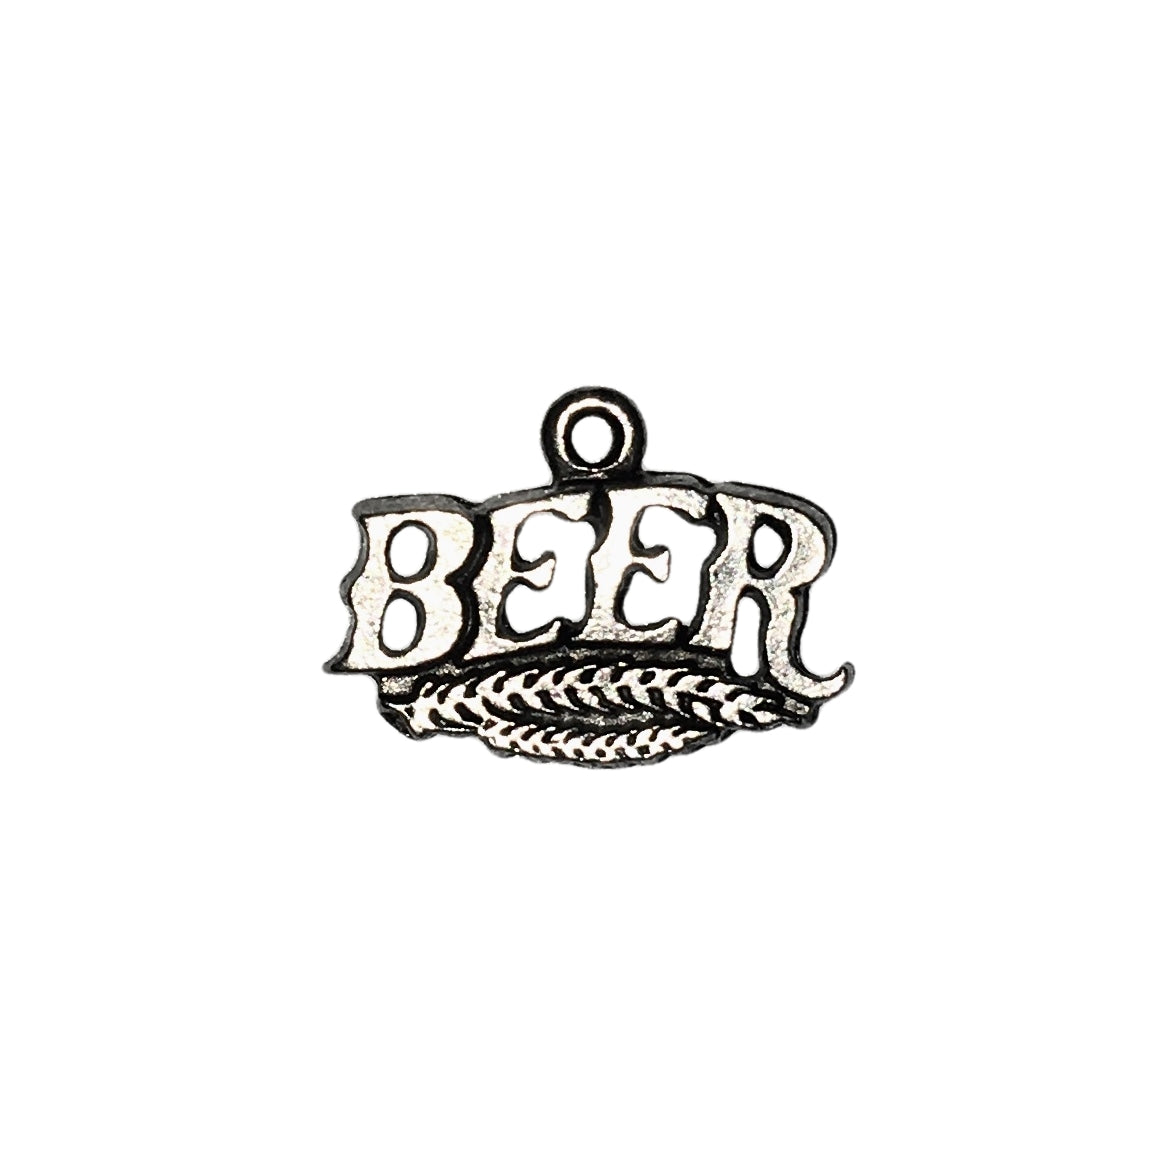 Beer Word Charms - Qty of 5 Charms - Lead Free Pewter Silver - American Made